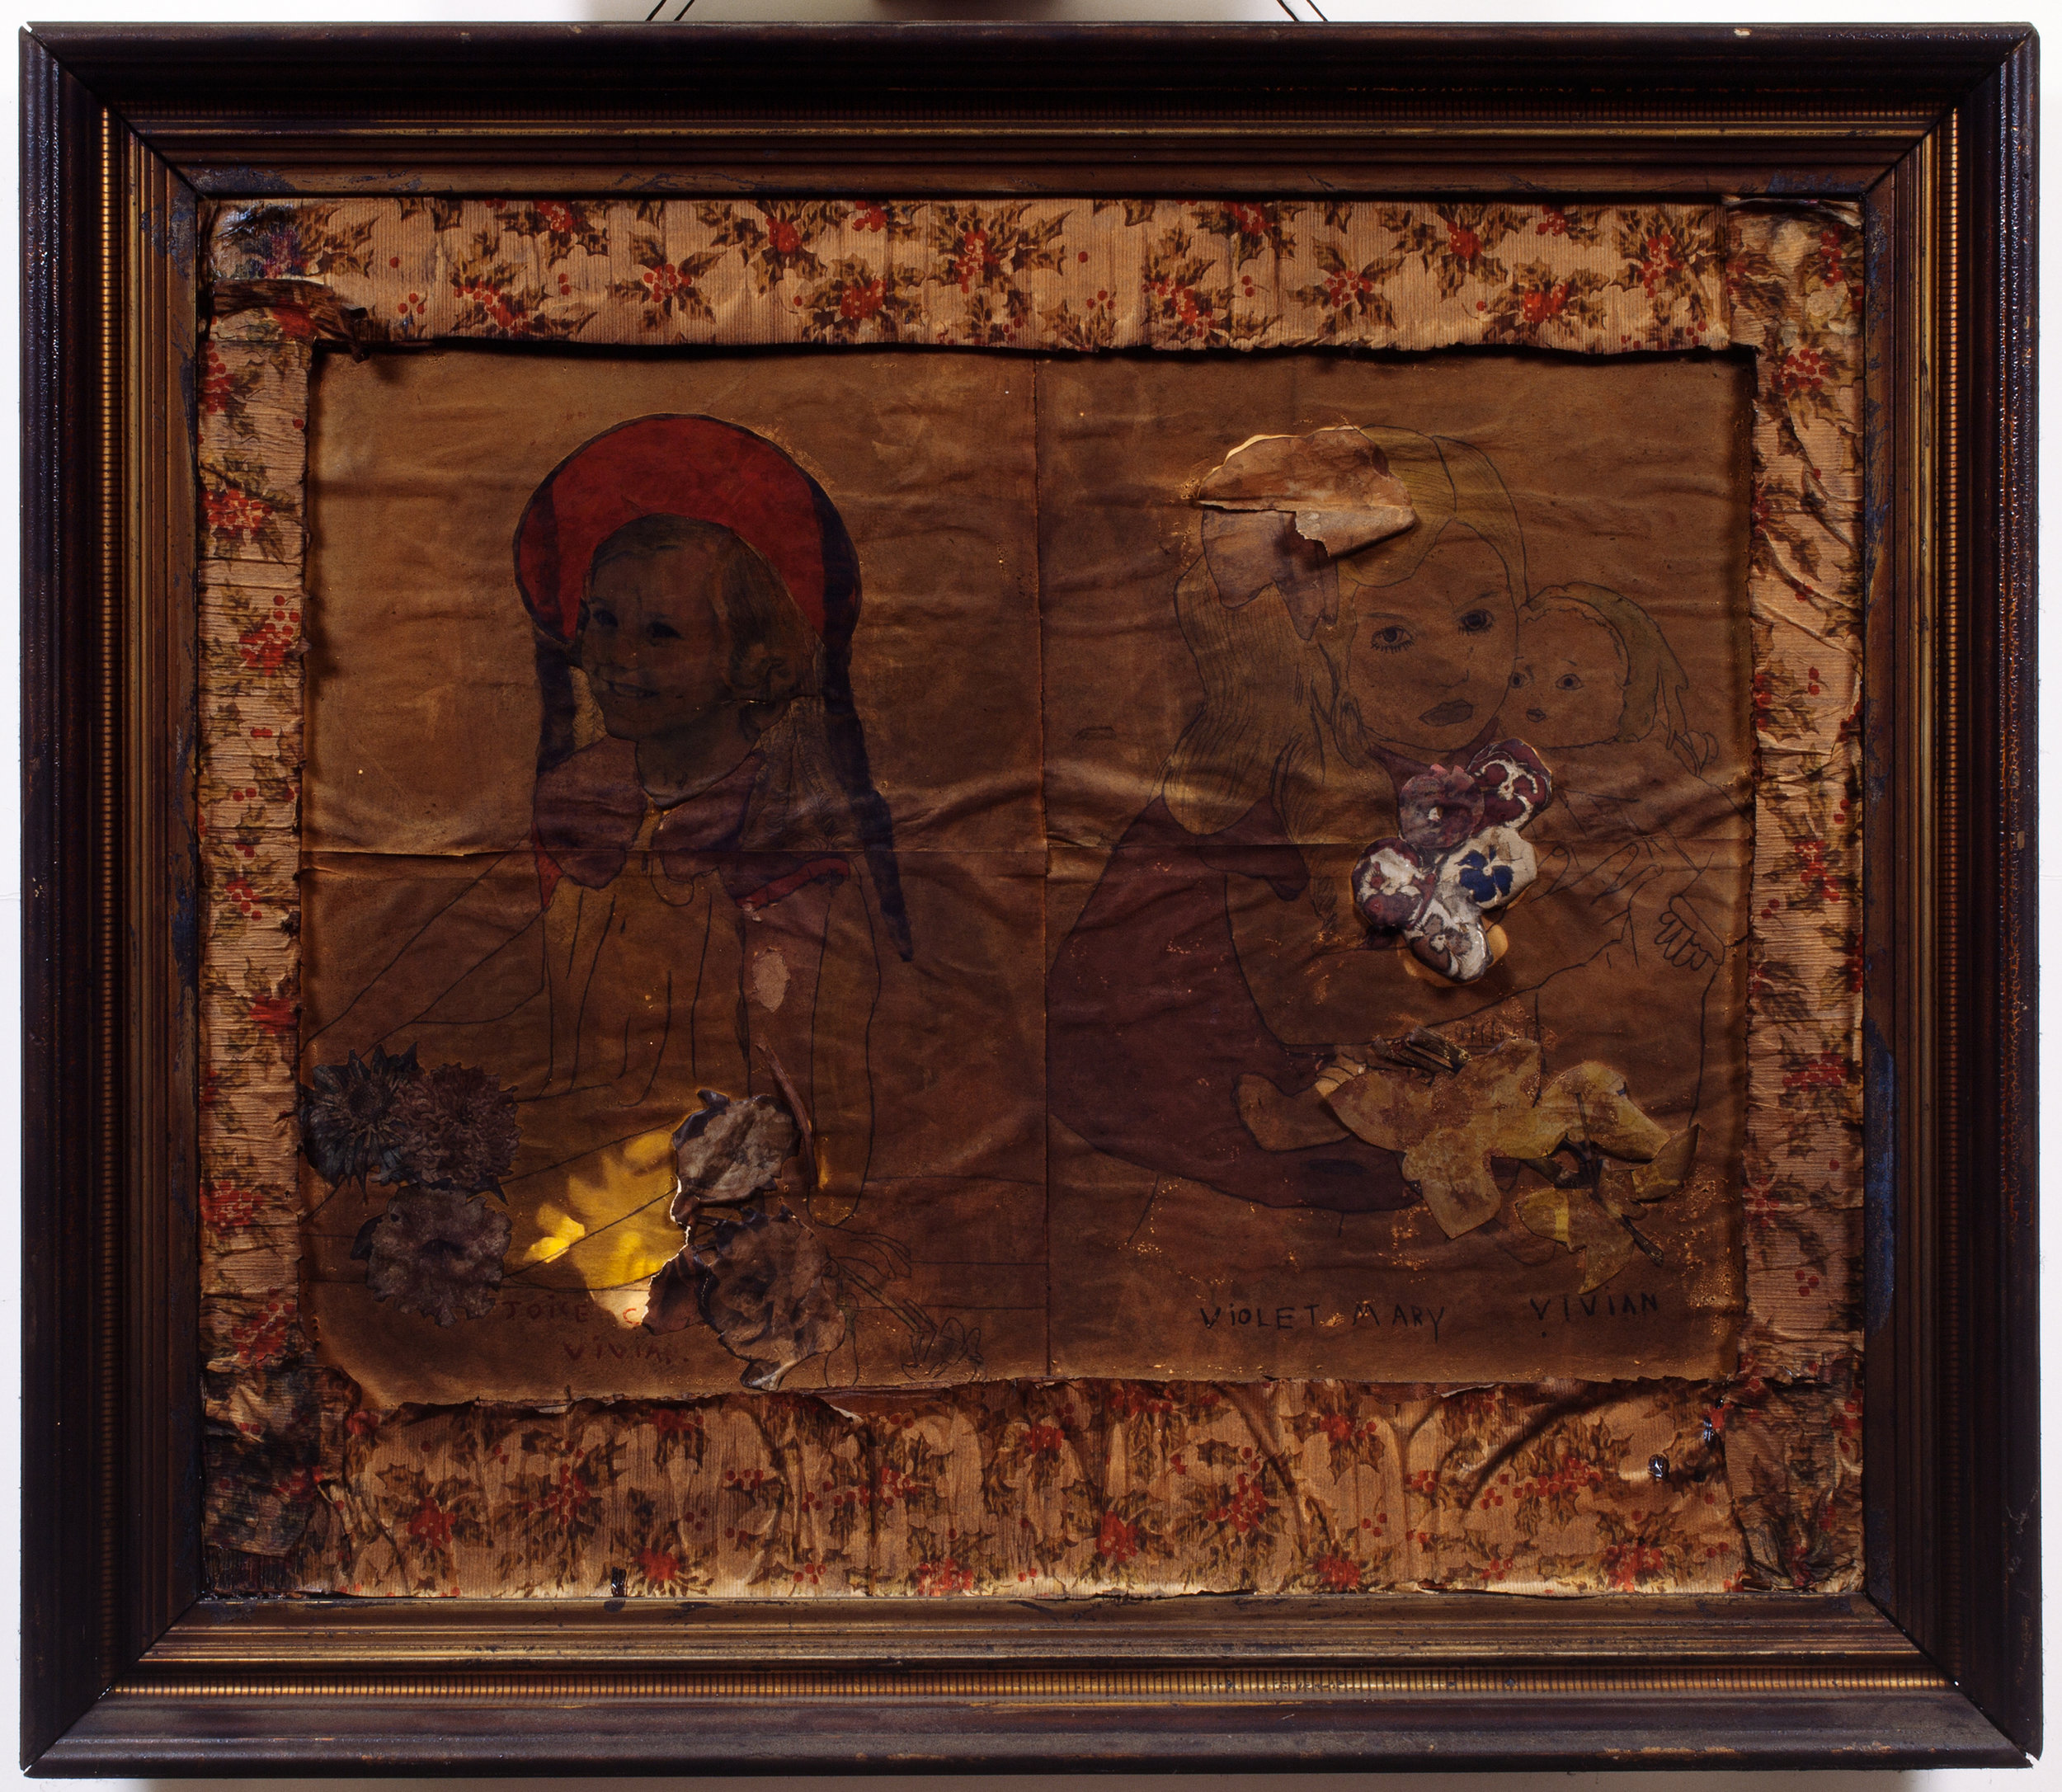 Henry Darger (American, 1892-1973). Violet, Mary and Joice Vivian, ca. 1940s. Mixed media on paper, 26 x 30 in. (framed). Photo by John Faier.Collection of Robert A. Roth